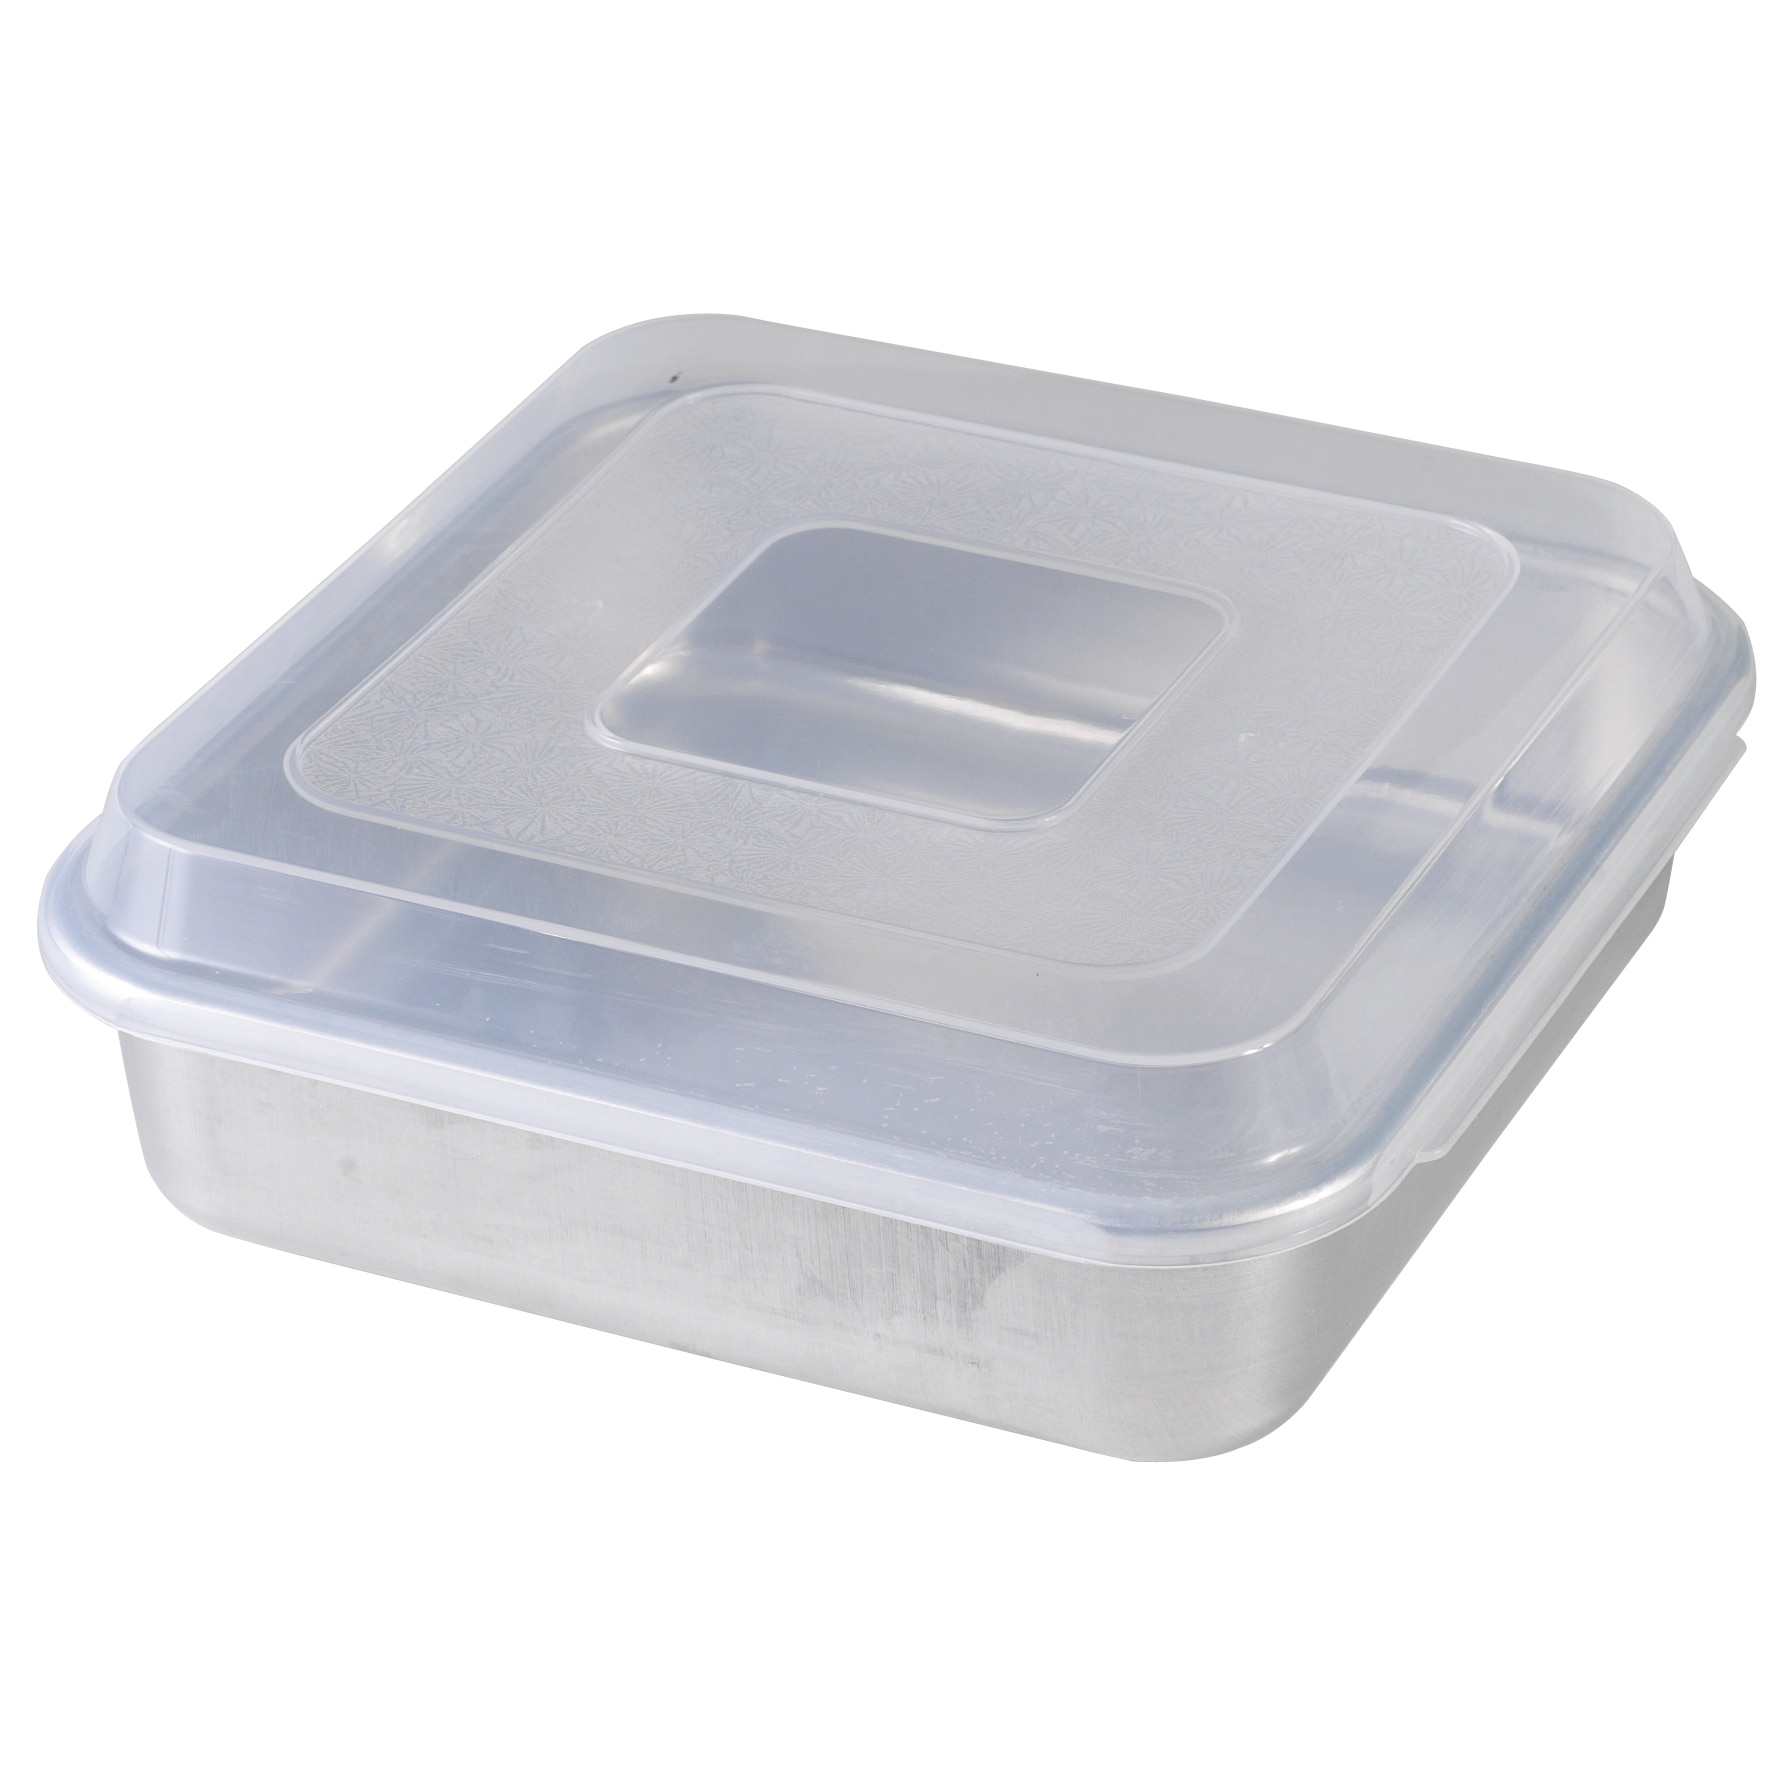 """Nordic Ware Square Cake Pan 9""""x9"""" with Lid, Silver aluminum"""